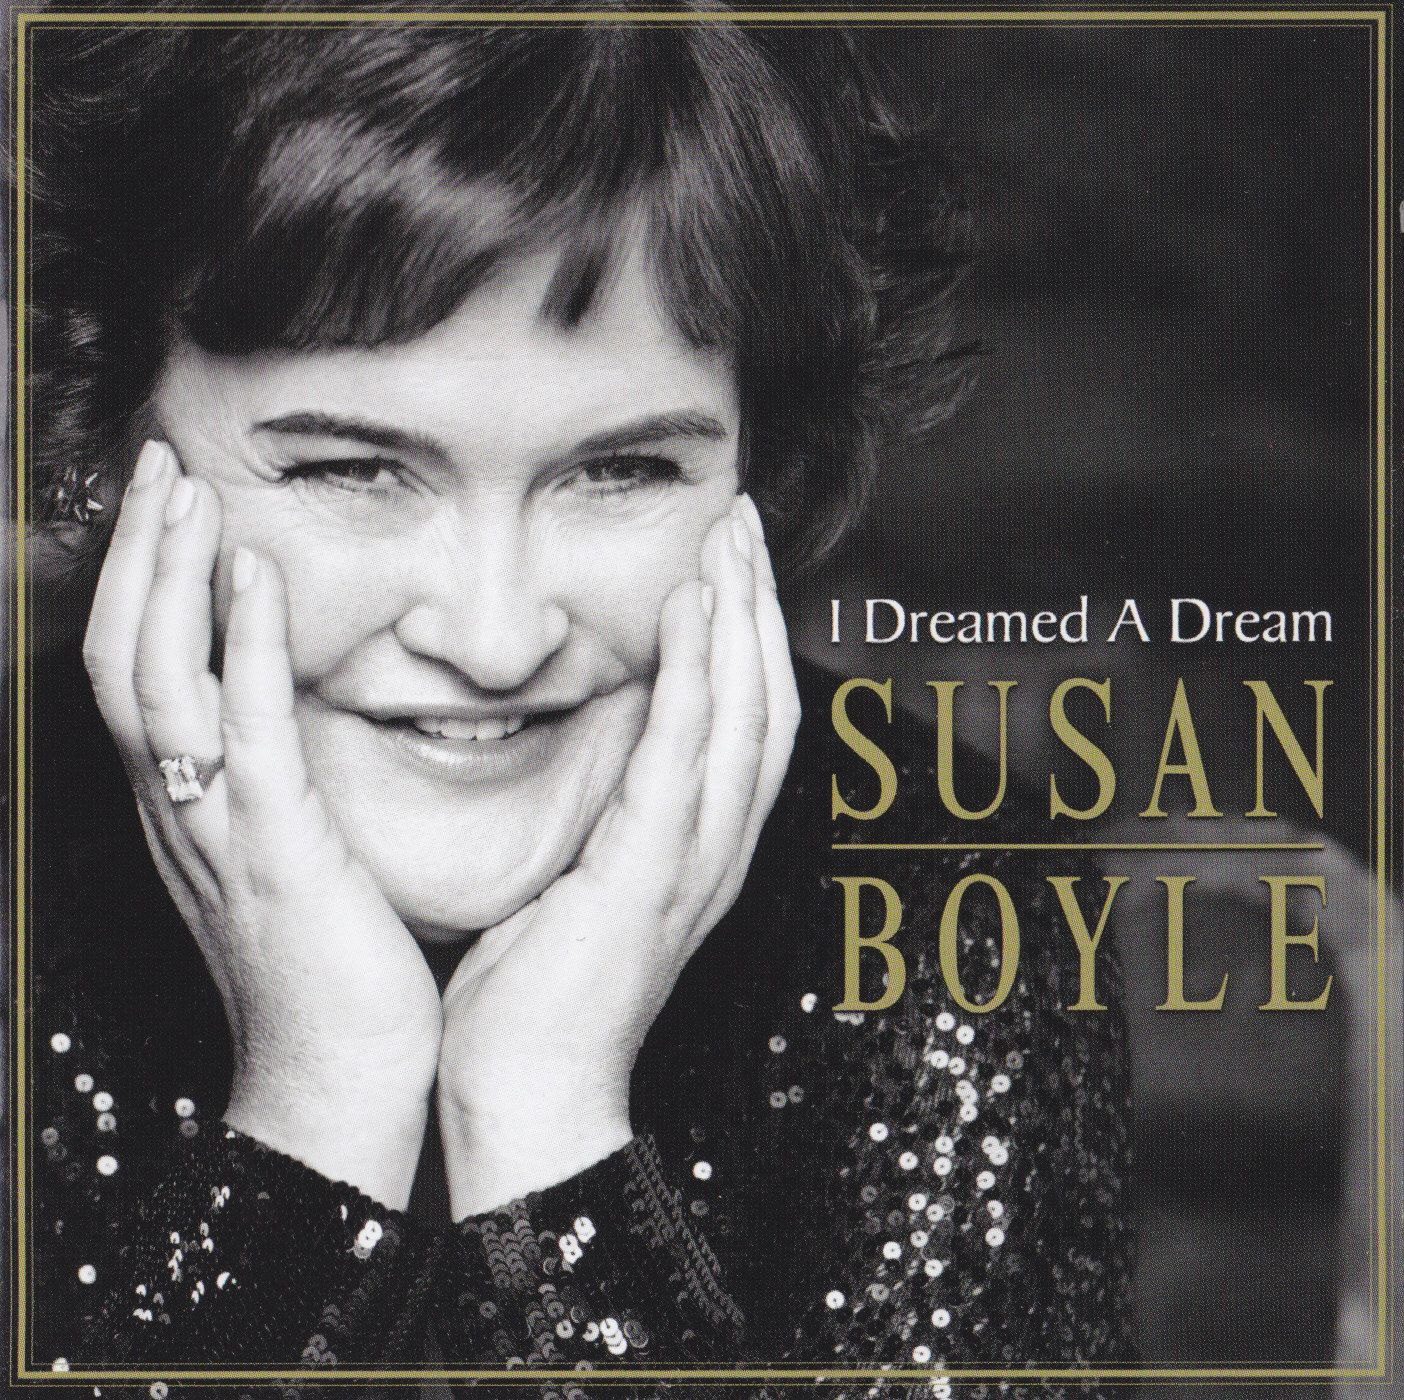 Susan Boyle - I Dreamed A Dream album cover